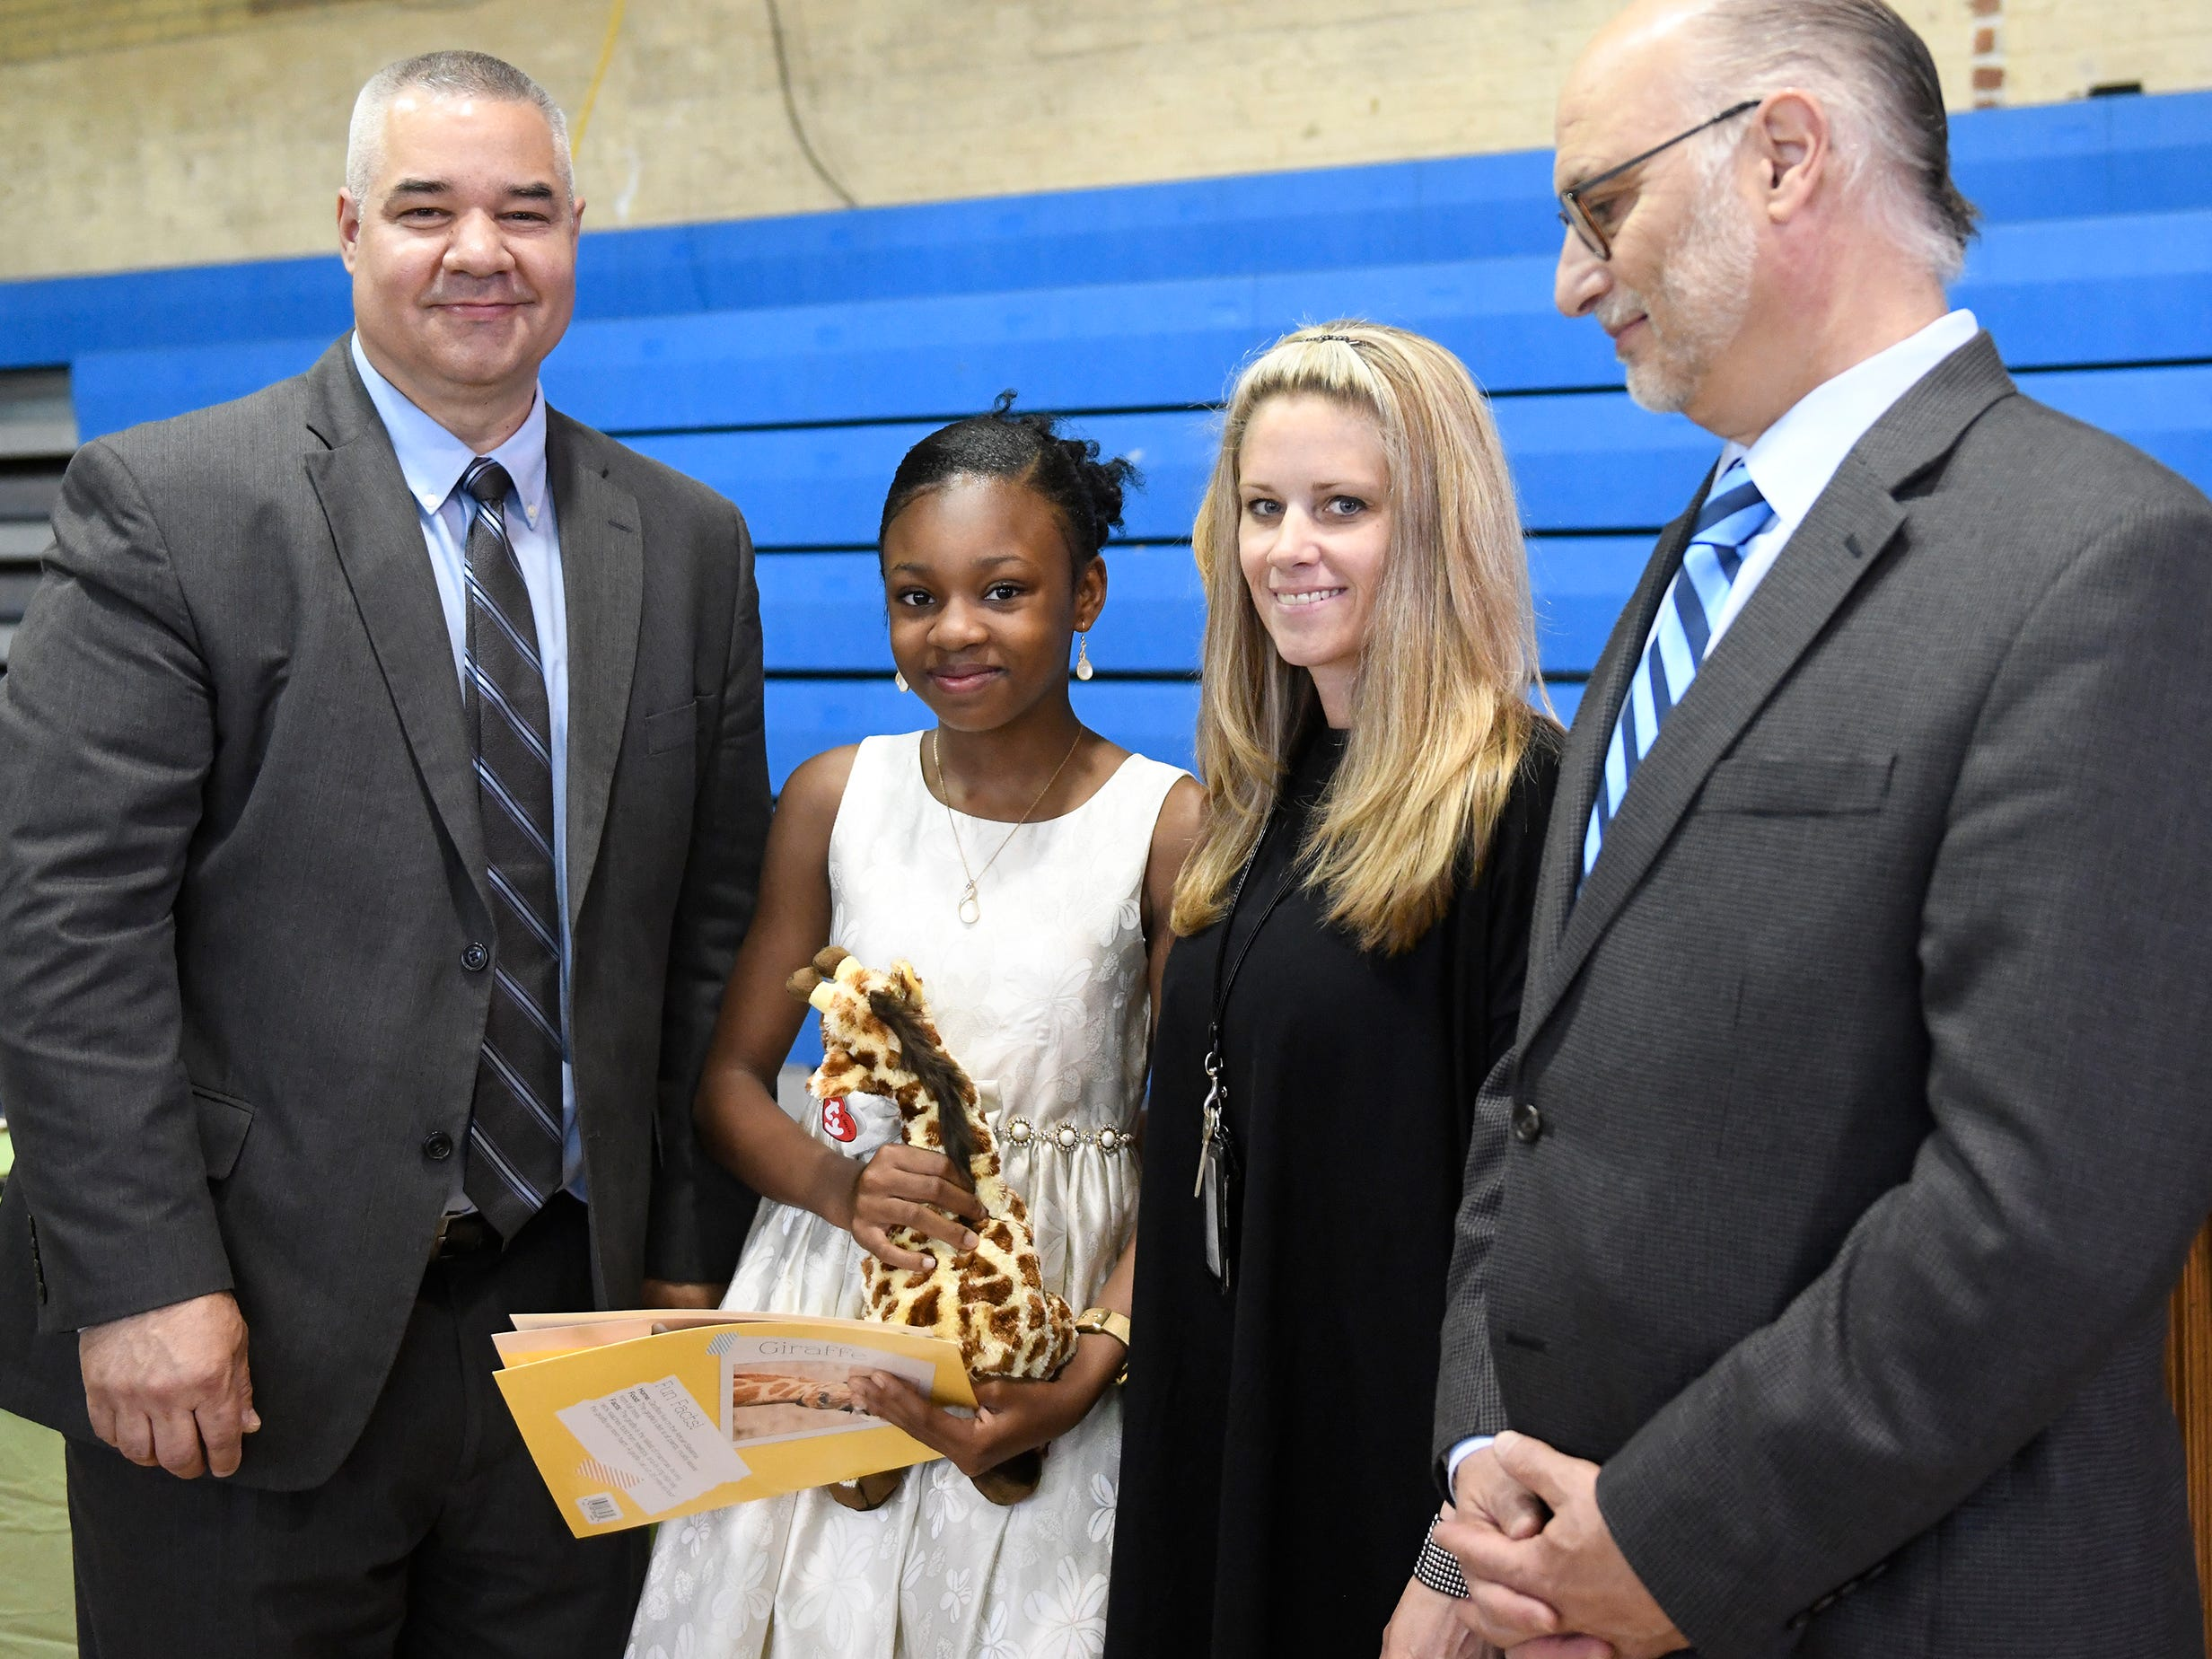 """Rossi Elementary School student Oluwatomisin """"Michelle"""" Akinyoade was presented with a Giraffe Hero Award during a special ceremony on Wednesday, May 15, 2019."""